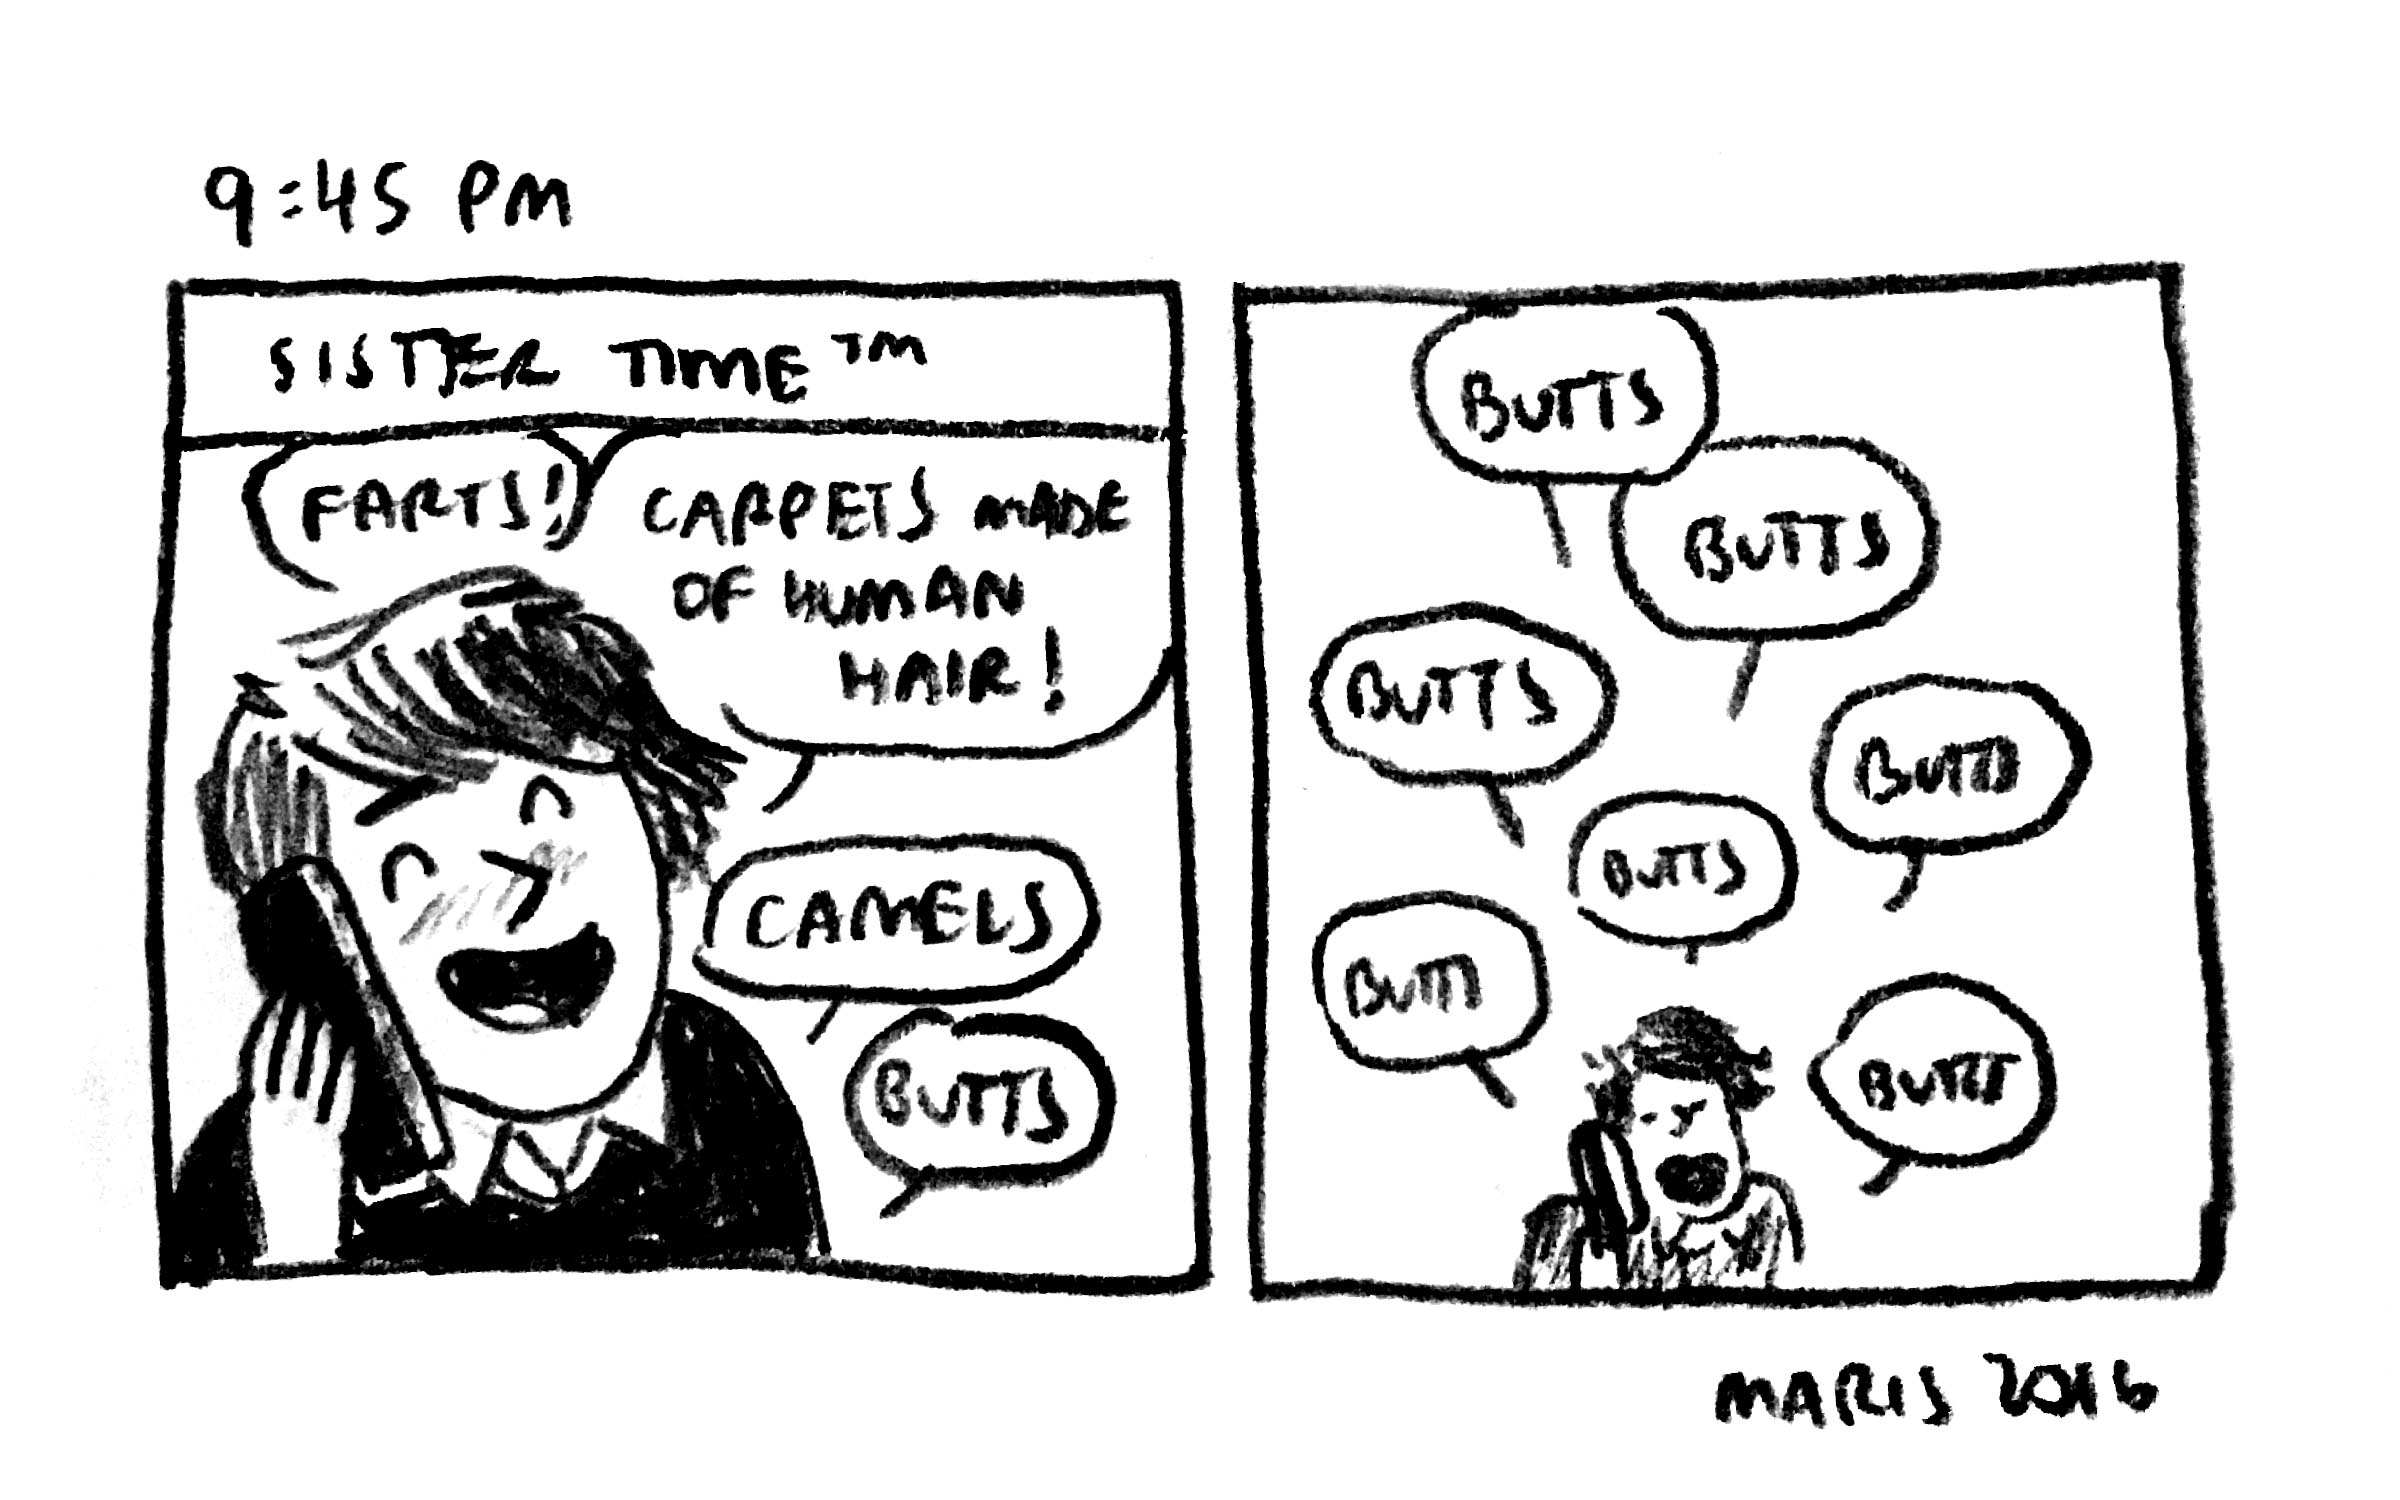 17_mw_2016_hourlies.jpg